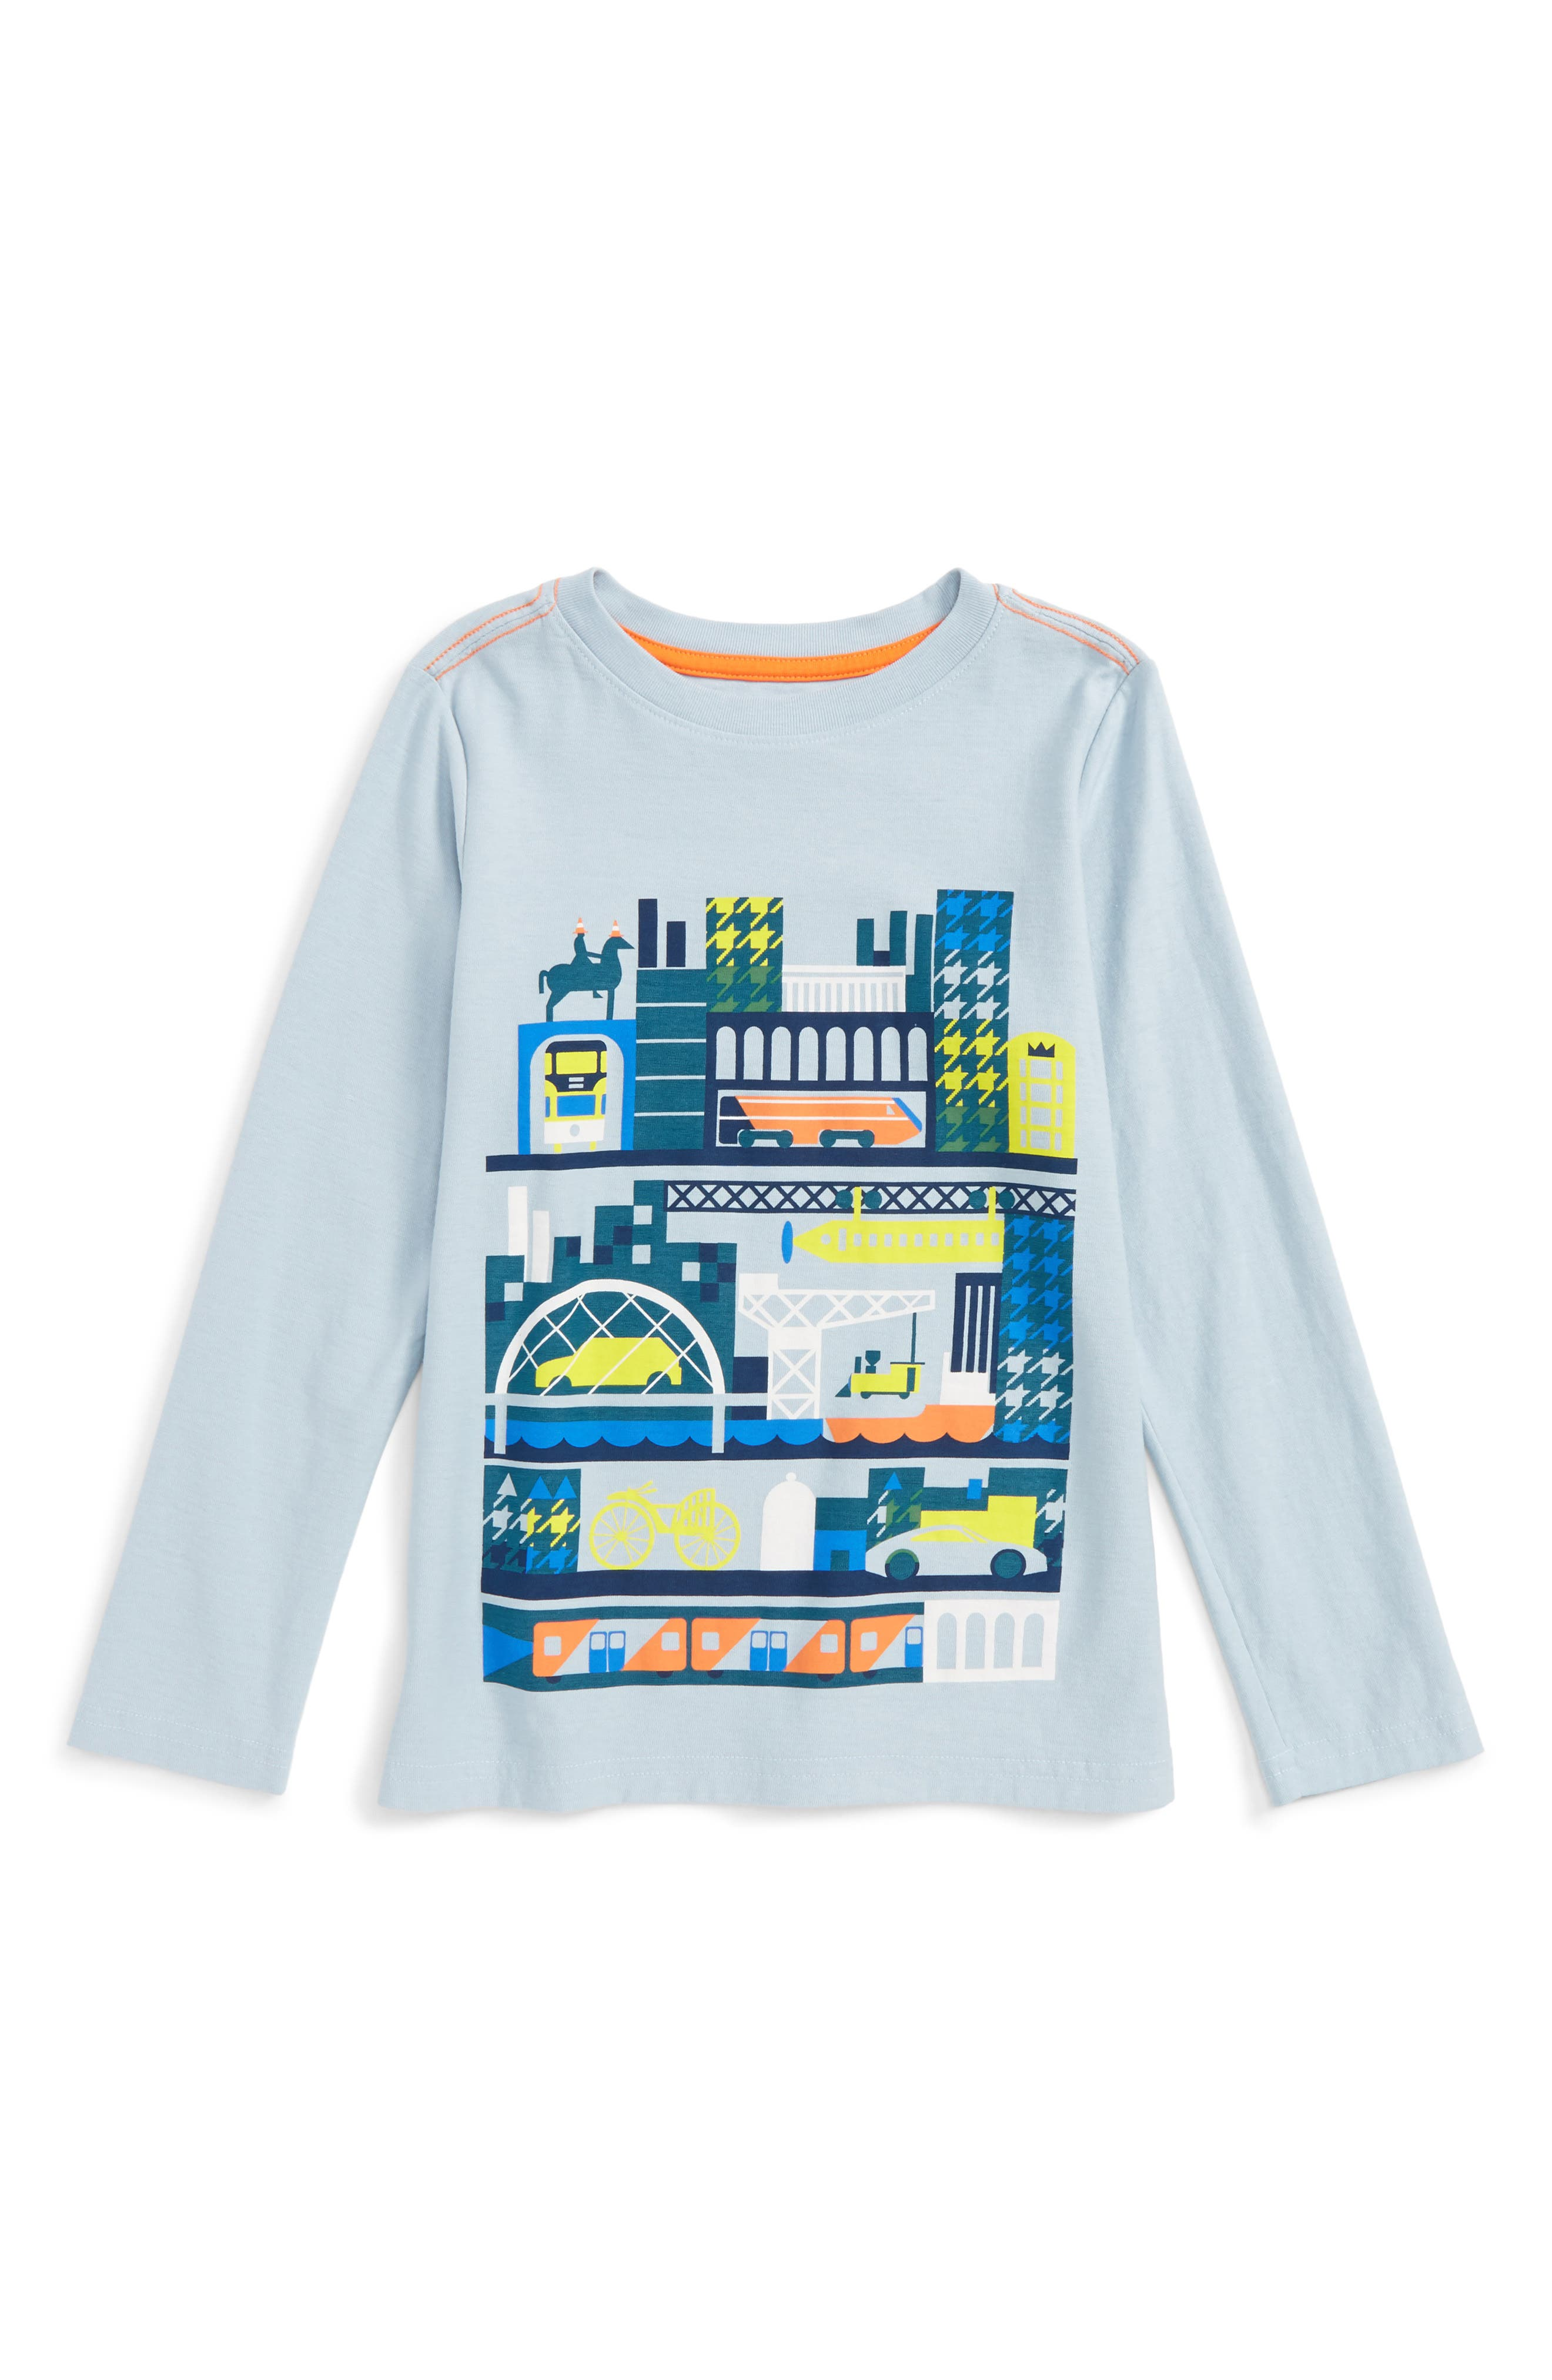 Tea Collection Glasgow Tour Graphic T-Shirt (Toddler Boys & Little Boys)